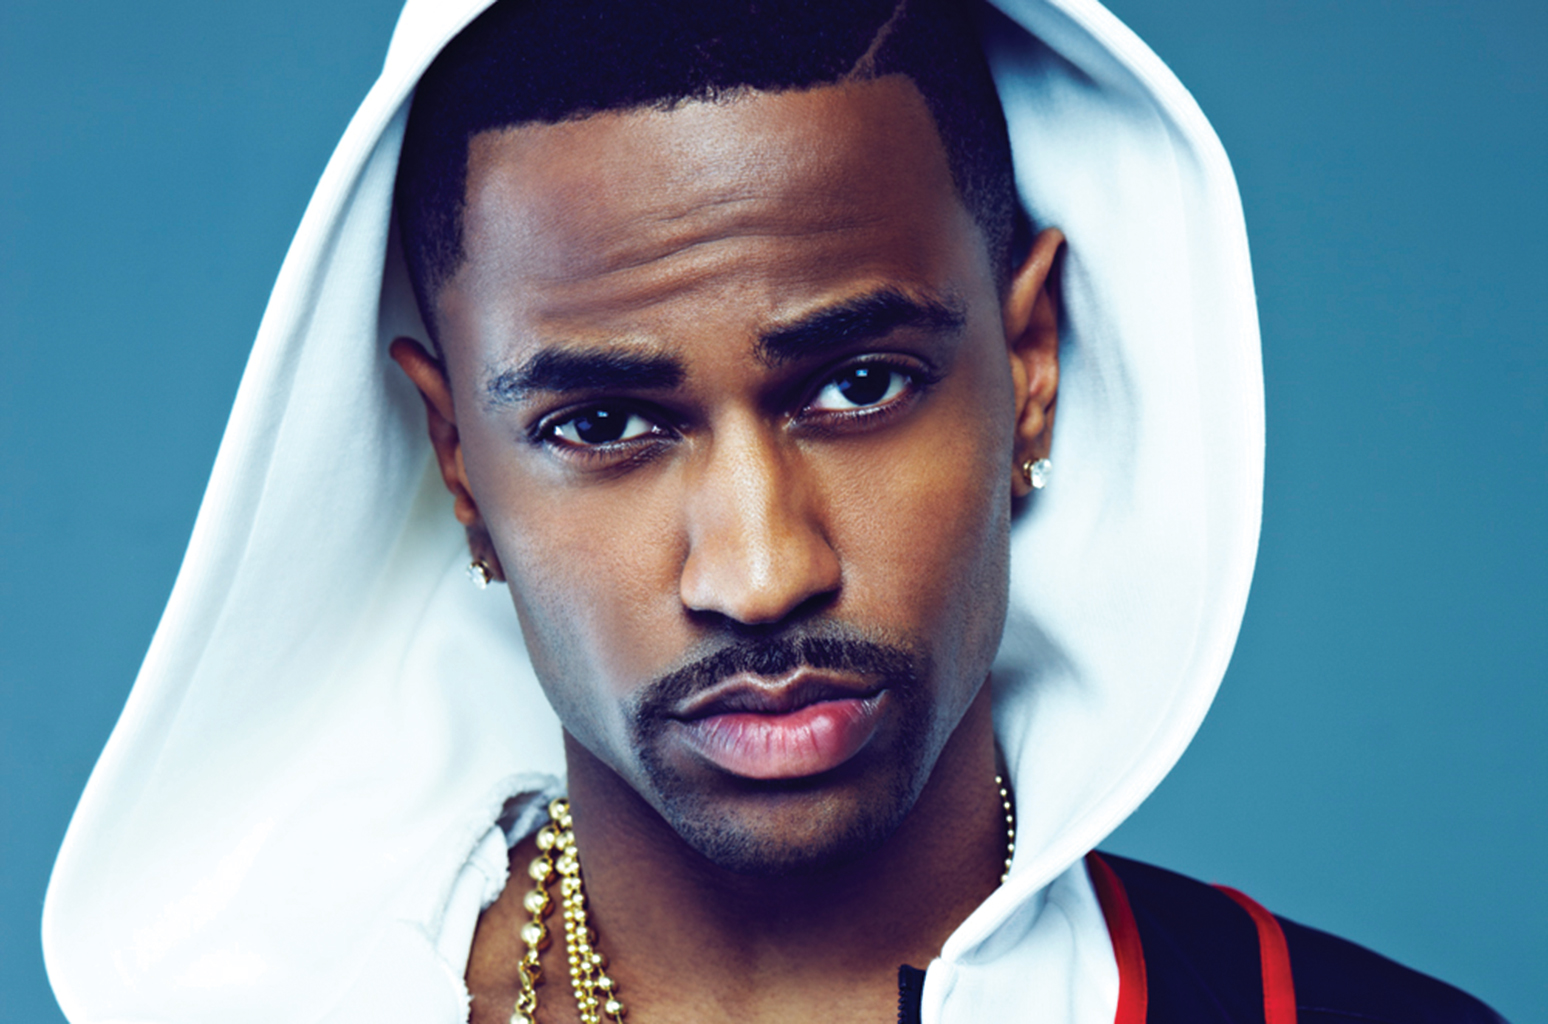 Is Your Most Favorite Rapper Aries - Have A Check!